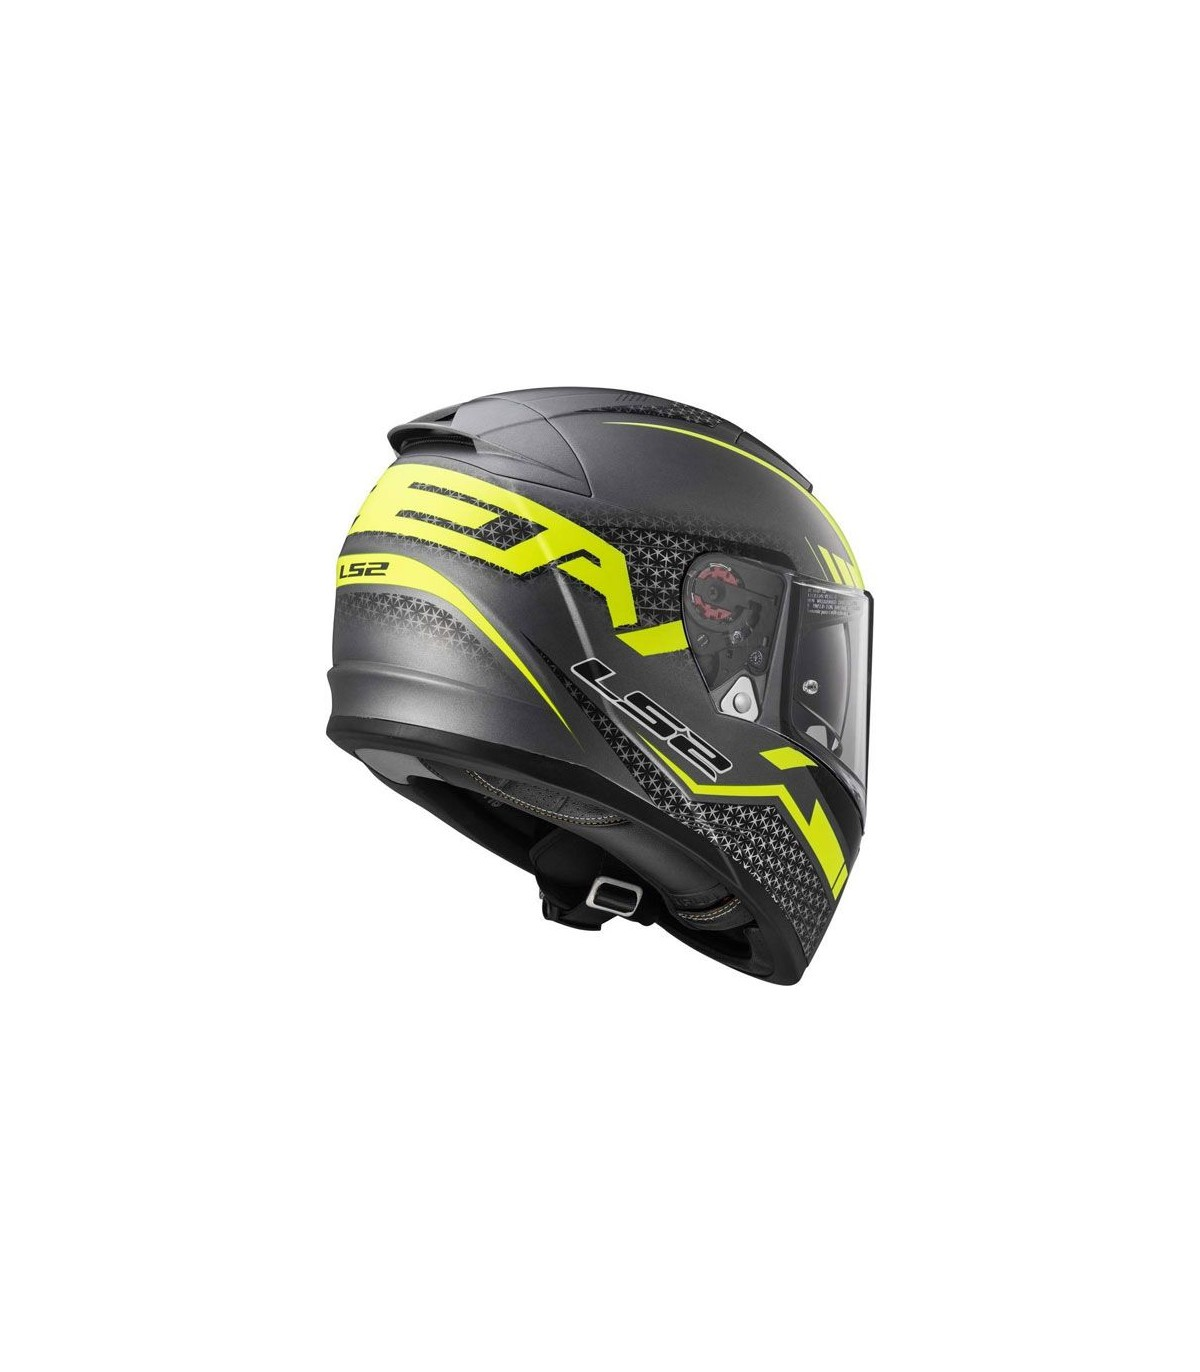 Helmet LS2 390 BREAKER (SPLIT Matt Titanium H-V Yellow)